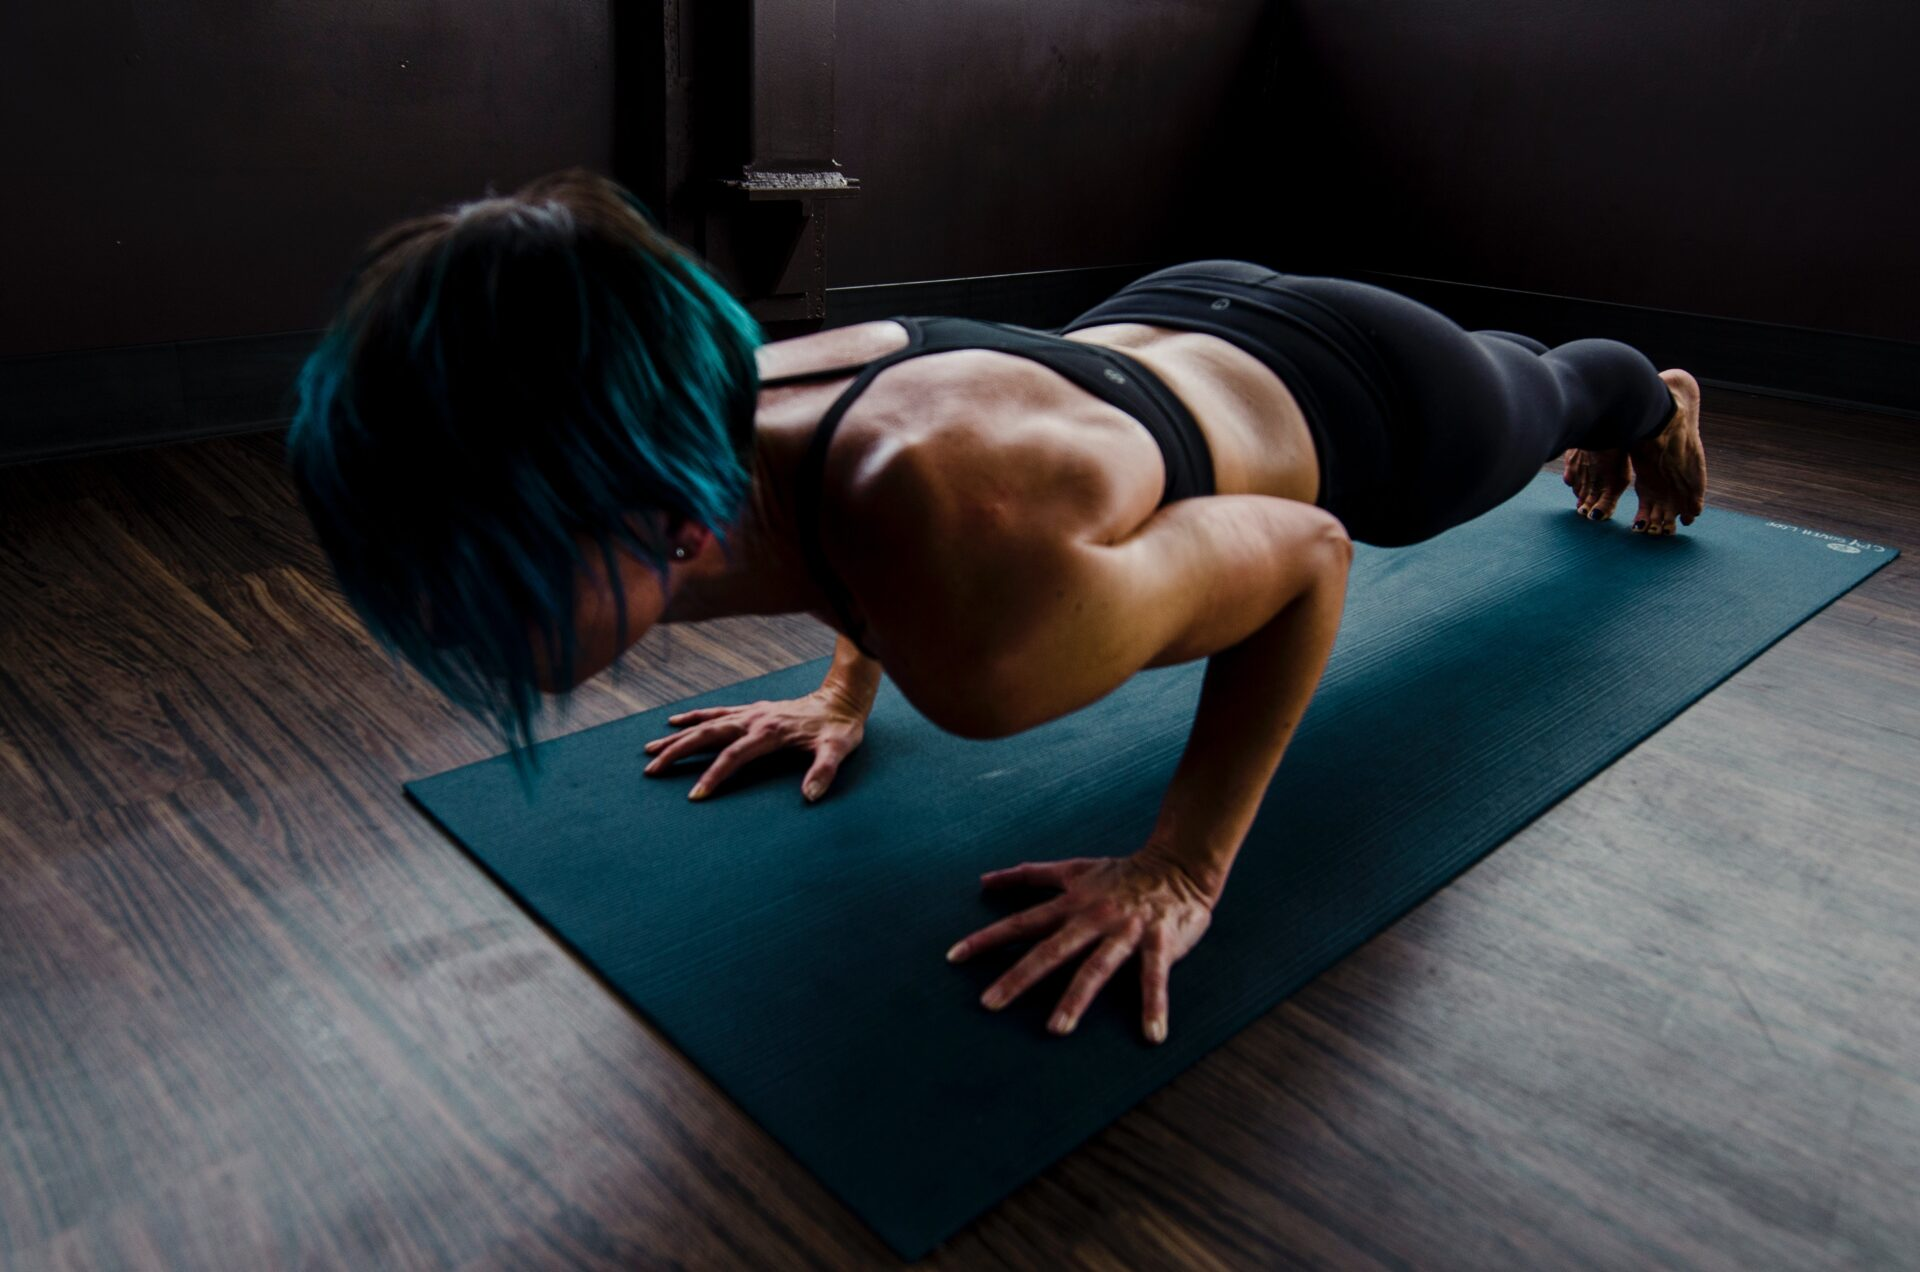 female with short blue hair planking